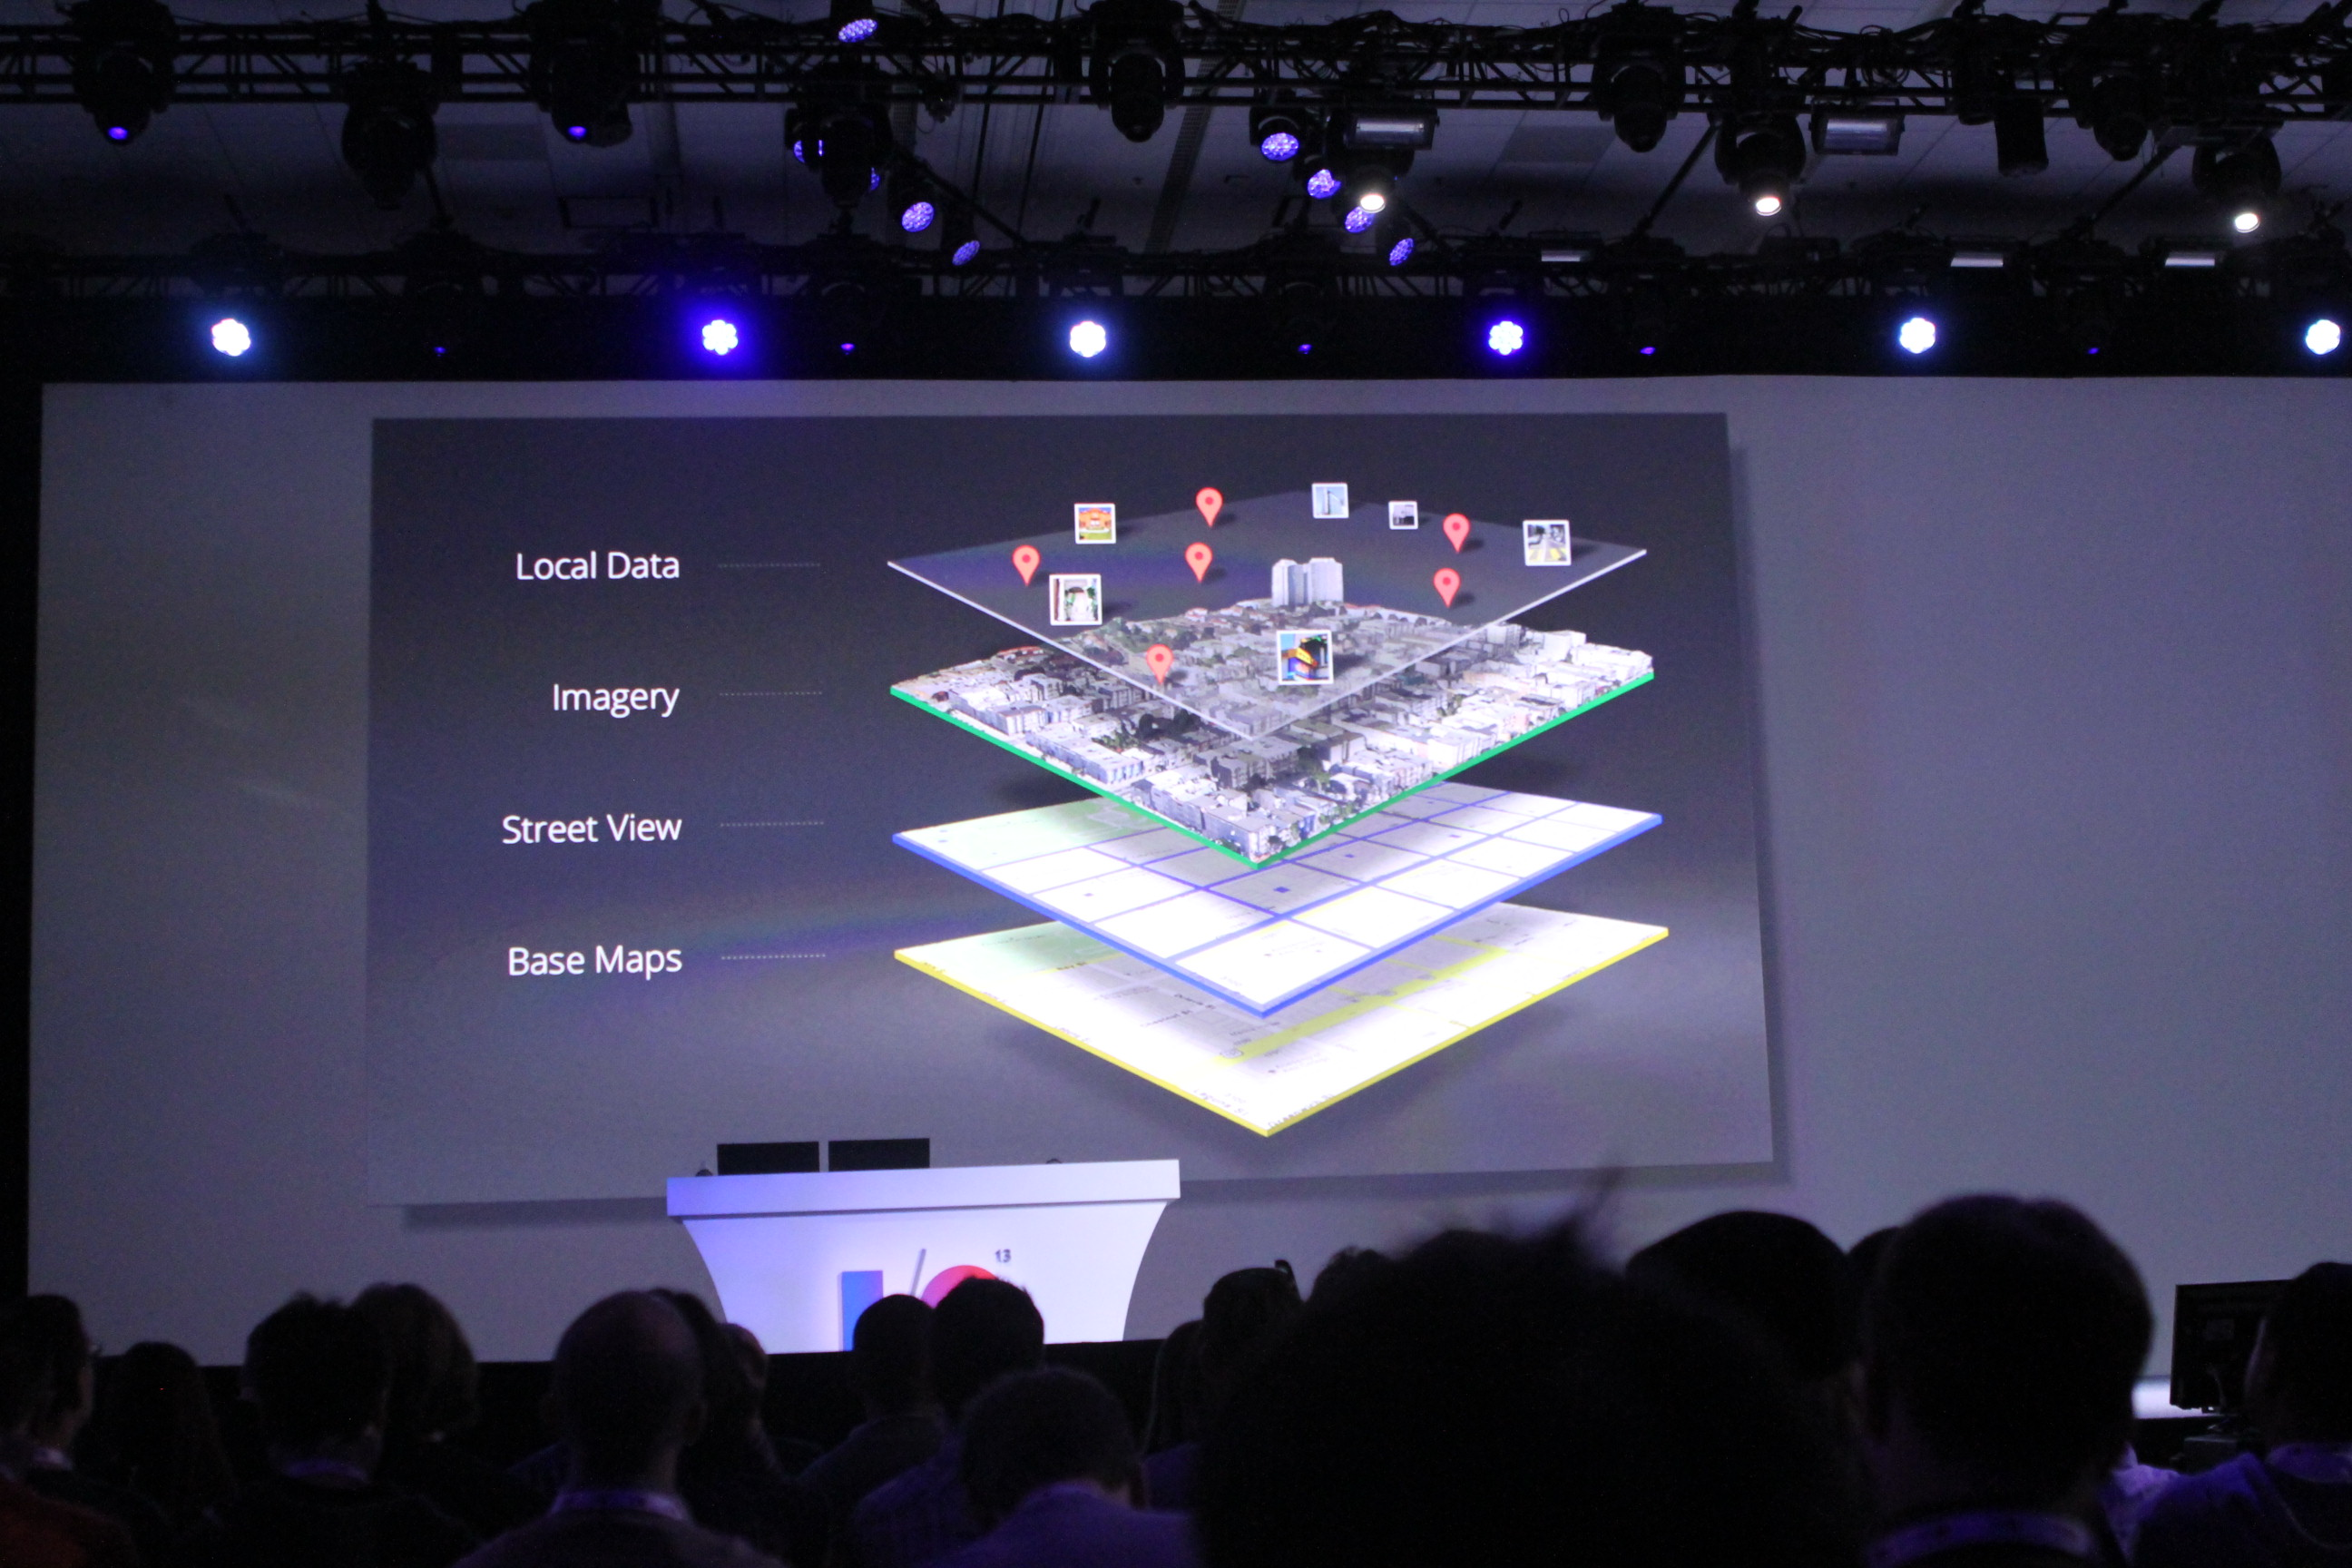 IMG 0164 1 Google launches Maps Engine Pro, an enterprise product for importing and visualizing location data